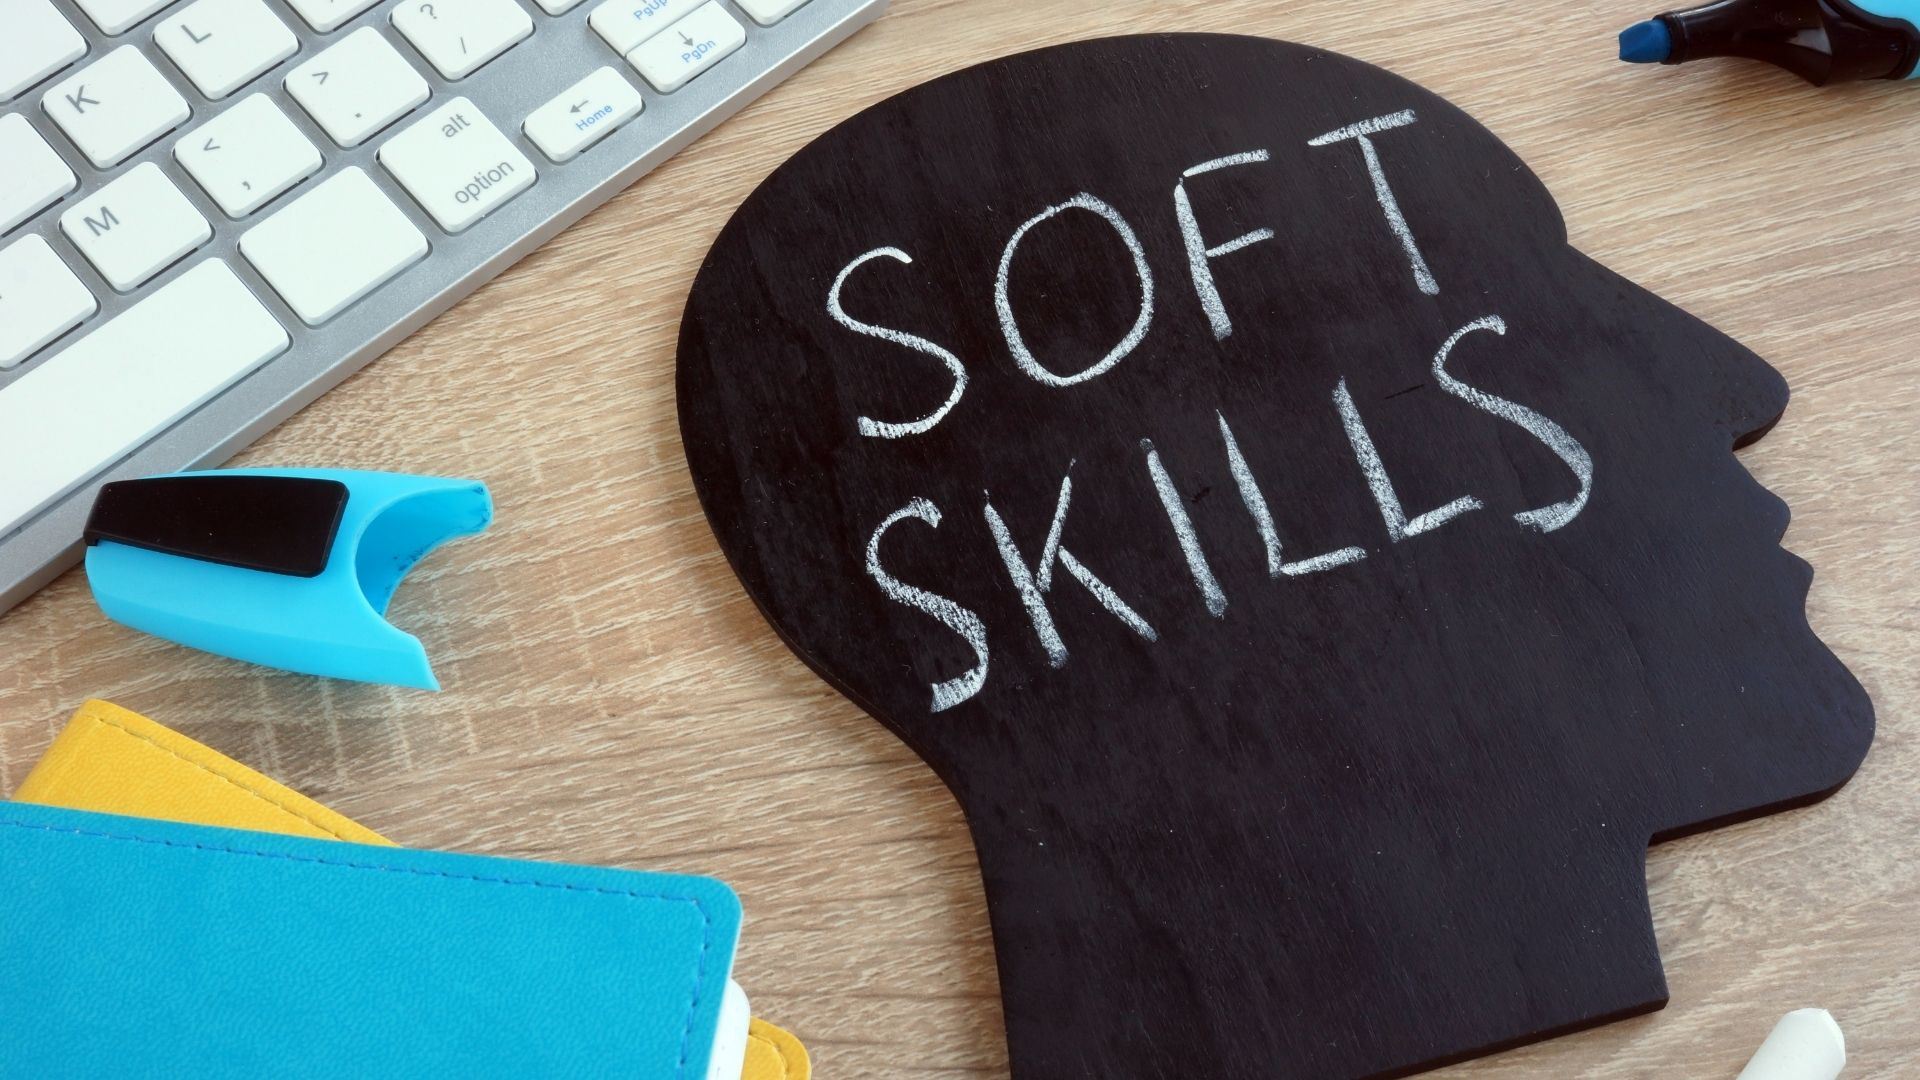 Photo of a head and computer keyboard to illustrate Soft Skills in the Workplace